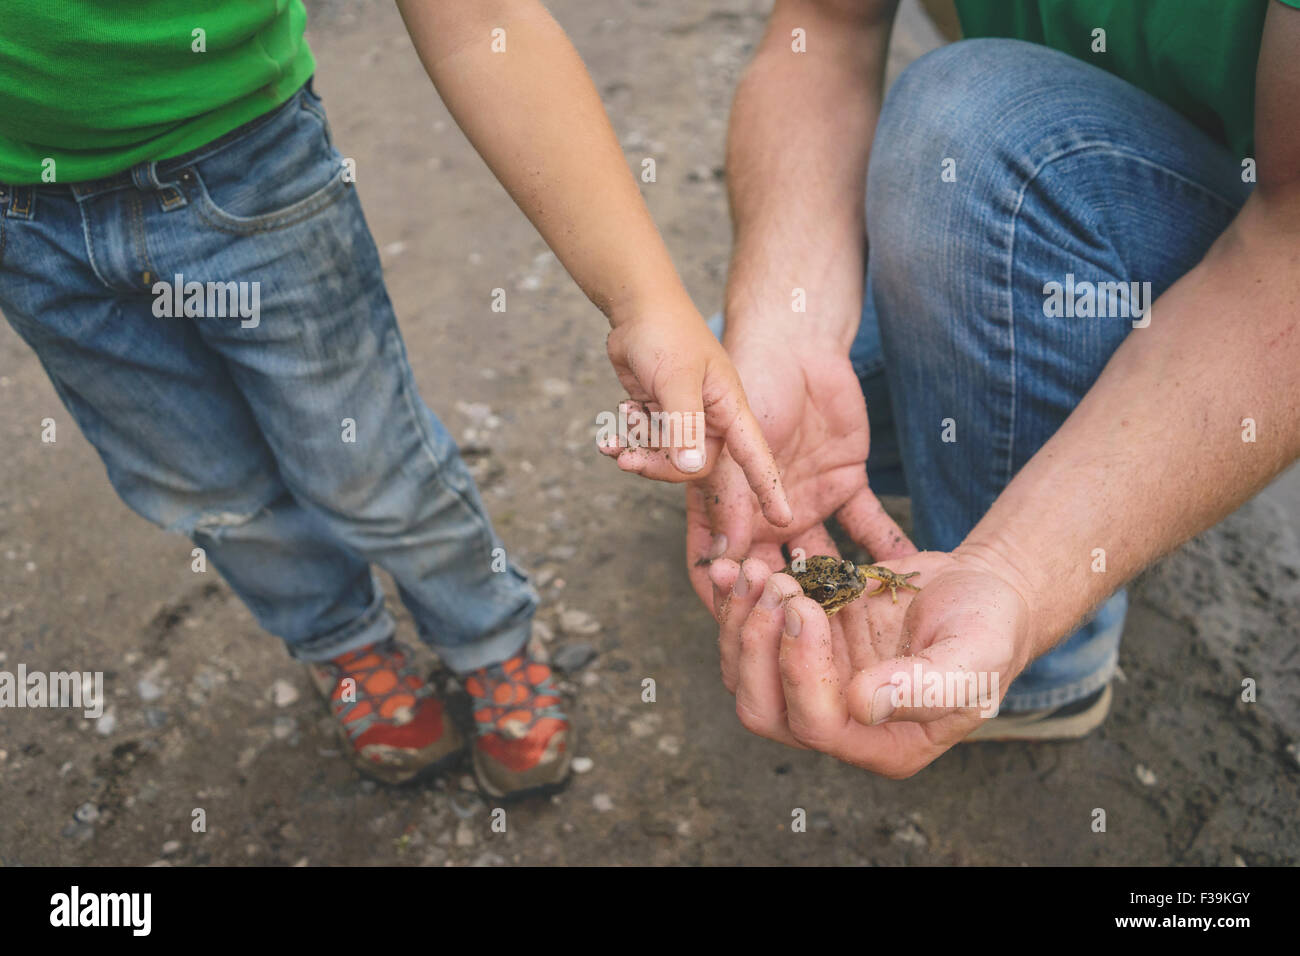 Boy pointing at a snail in his father's hands - Stock Image